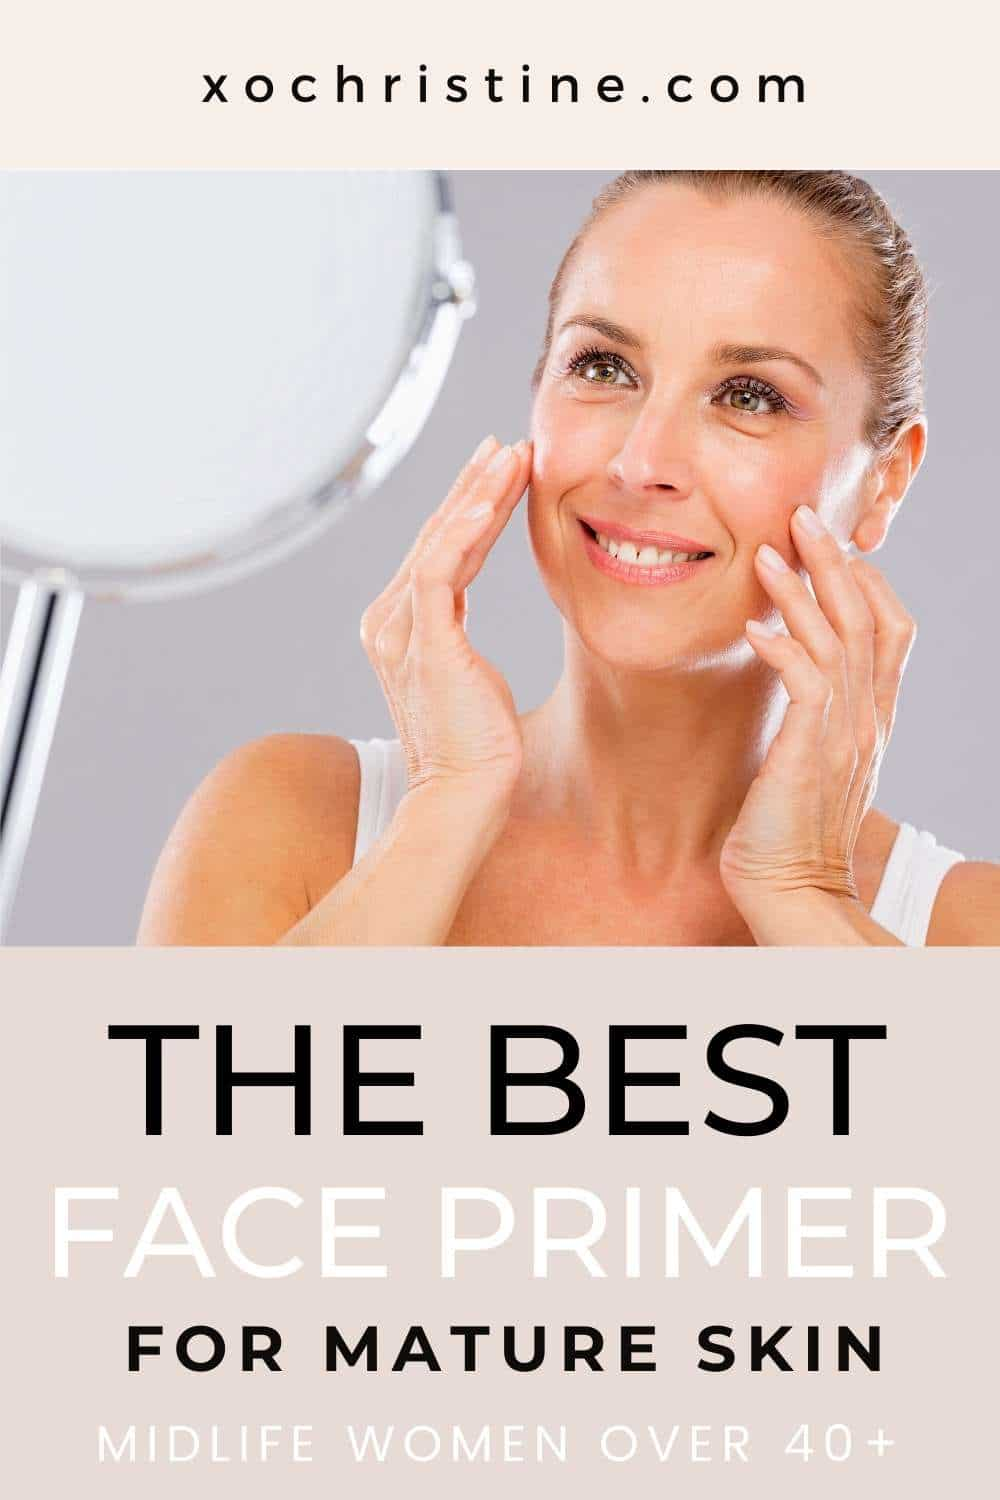 The best face primer for mature and aging skin women over 40